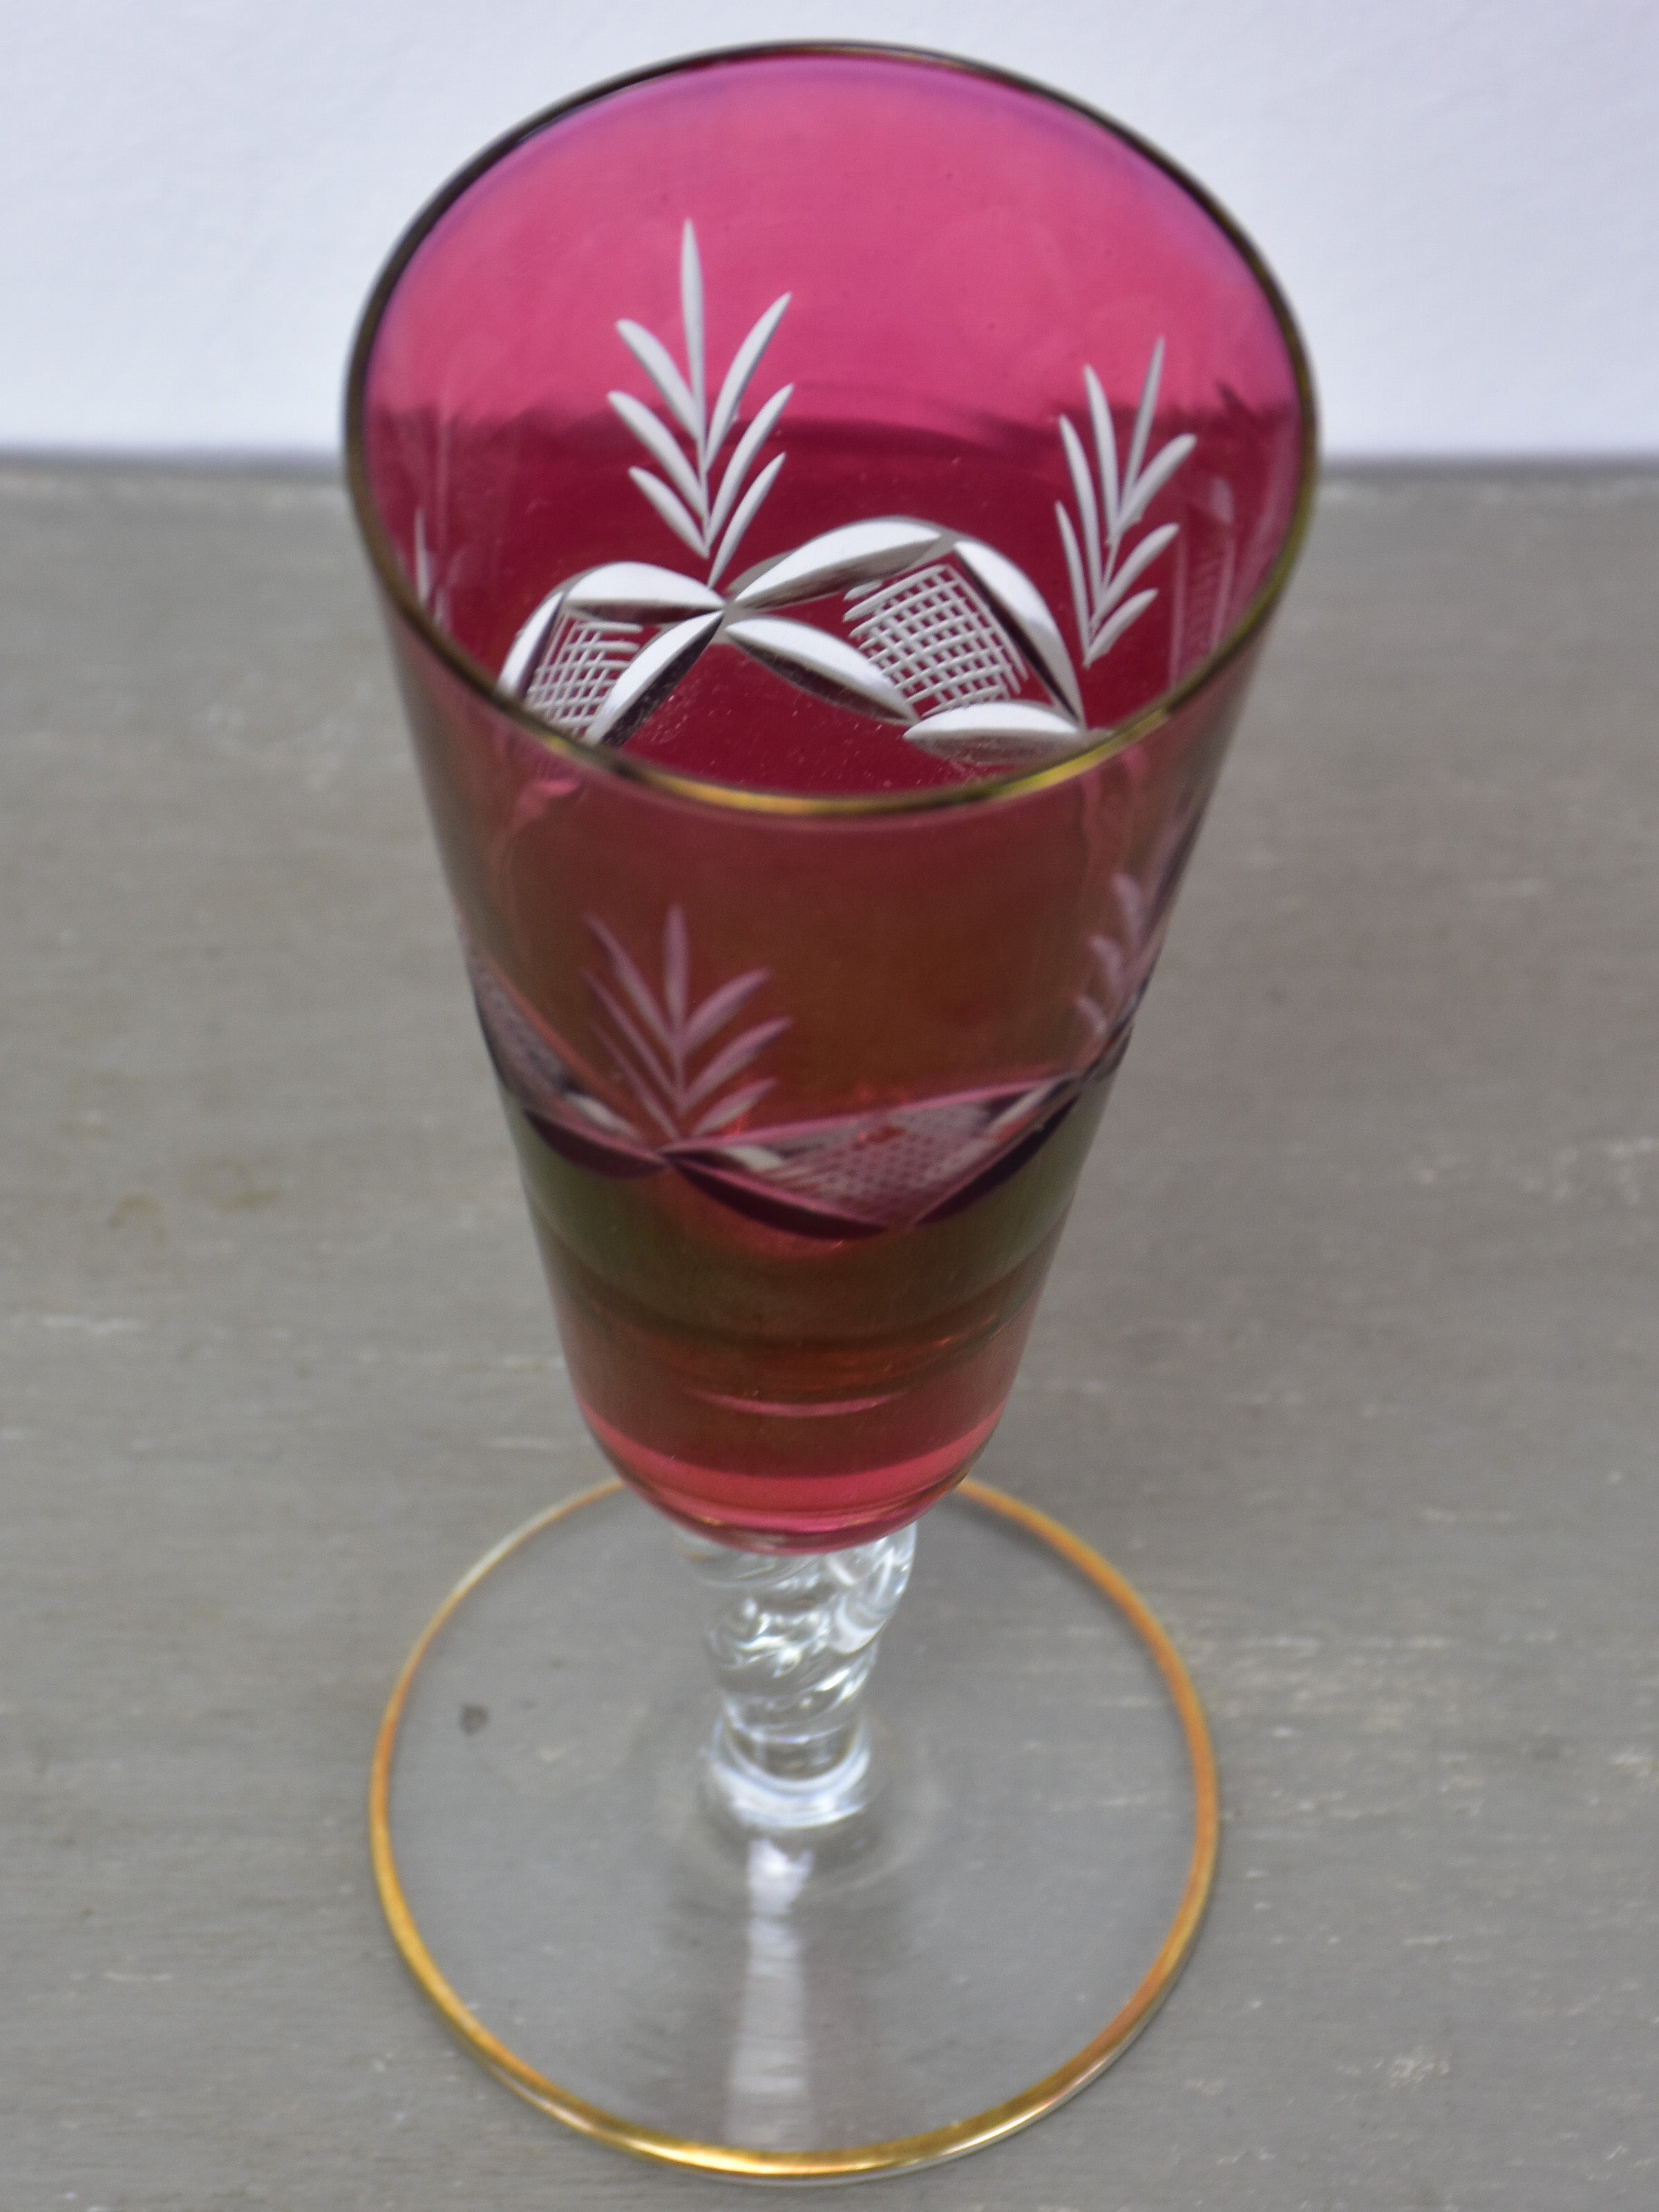 Six antique French champagne glasses with red etched glass